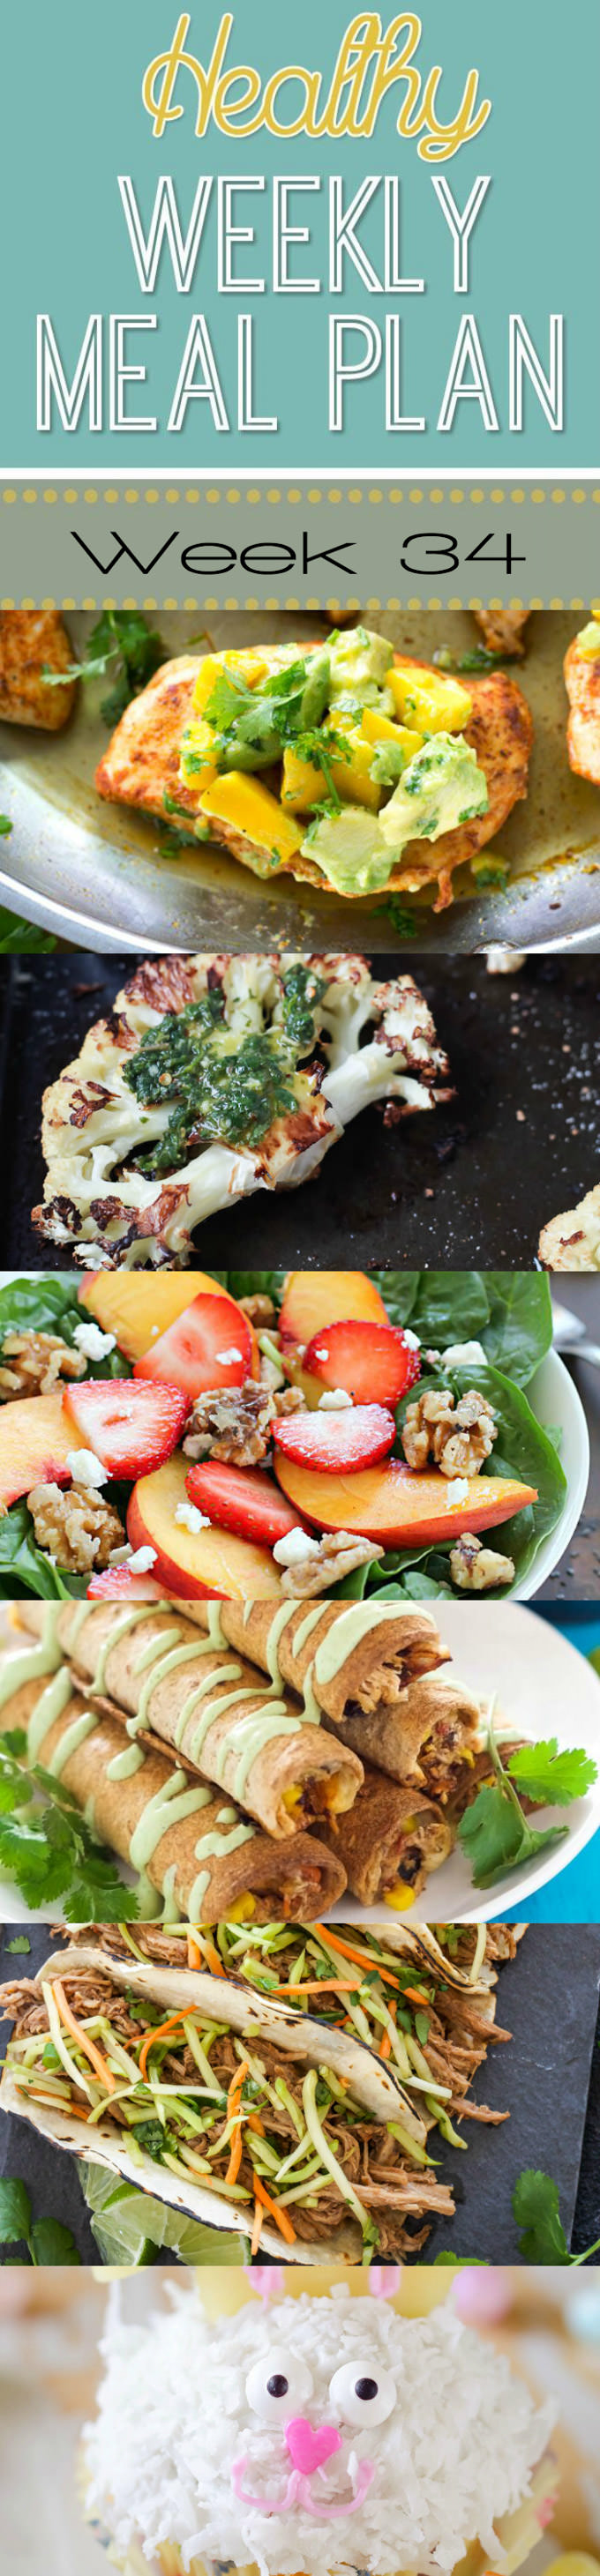 Healthy-Weekly-Meal-Plan-34-Vertical